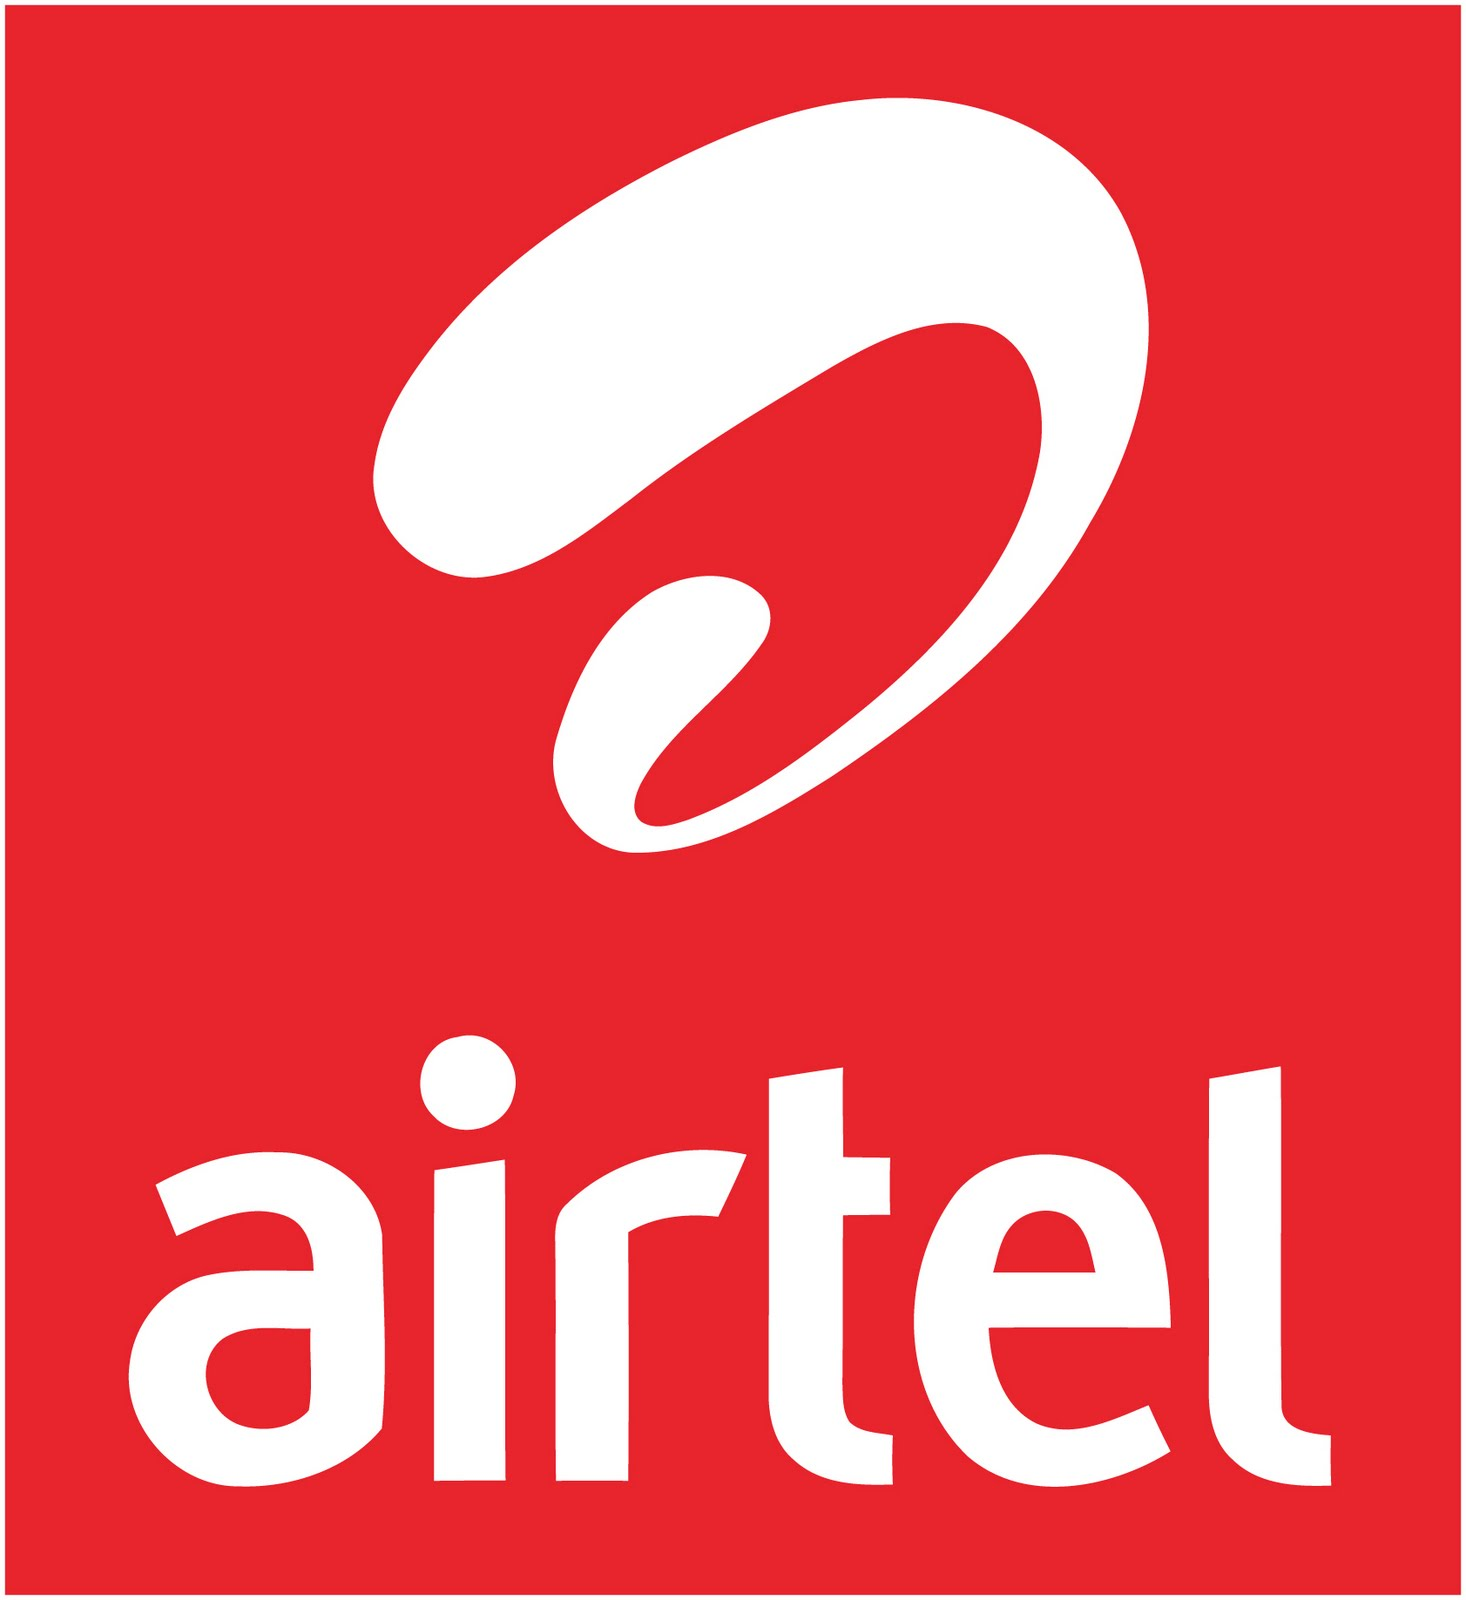 it strategy at bharti airtel This case study is about bharti airtel ltd (bal), the market leader in the indian telecommunication industry and its globalization strategy bal's telecom model was considered as the new model for telecom and effective for emerging markets like india, according to experts.